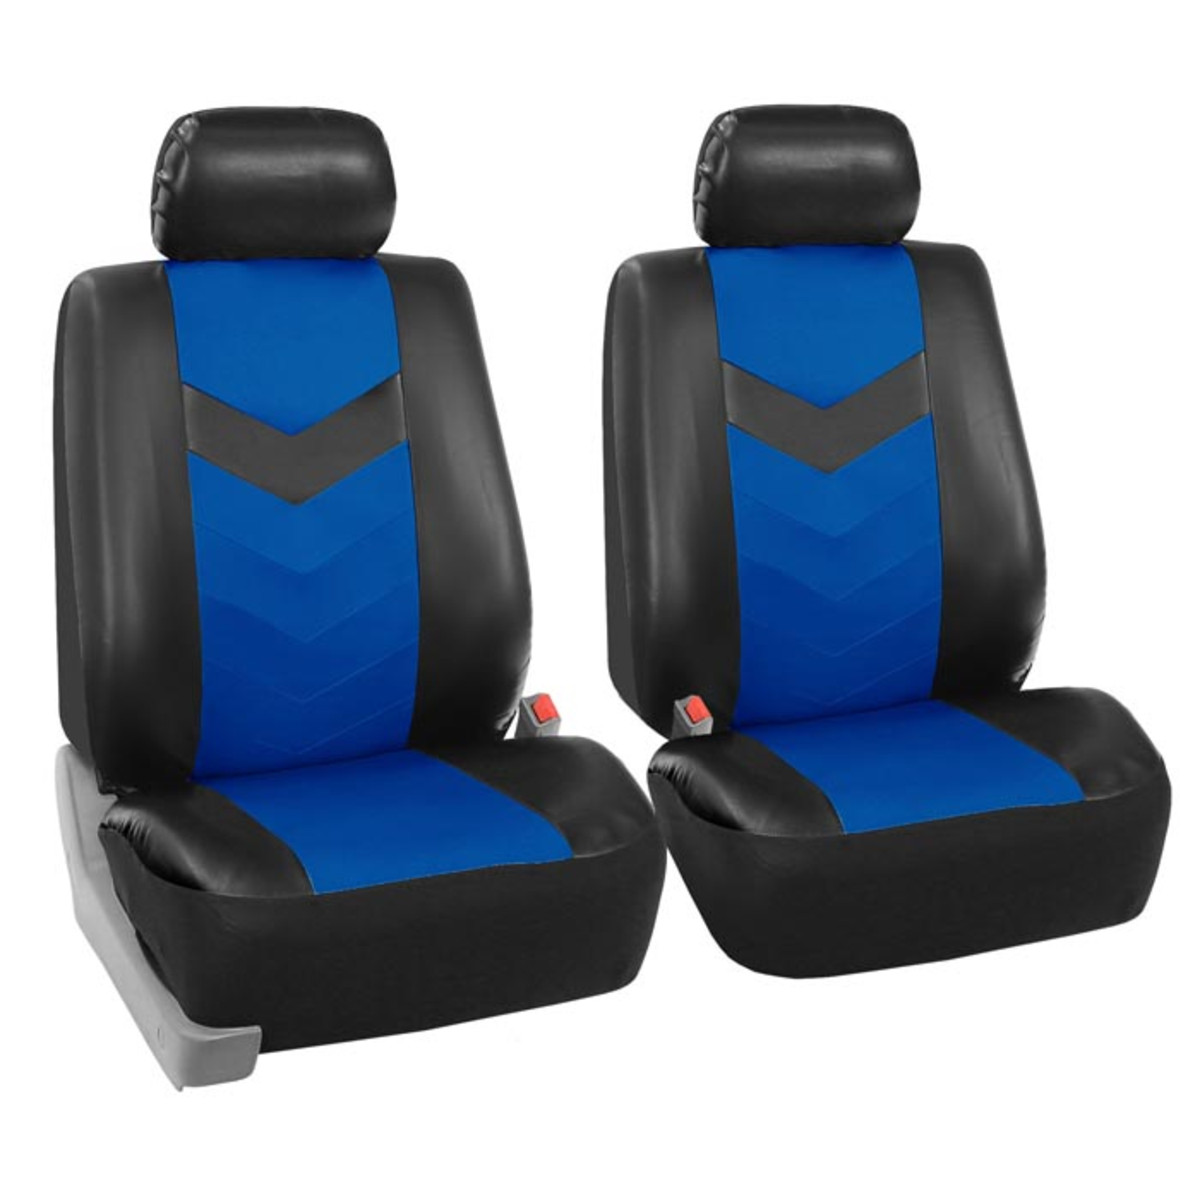 88-PU021102_blue seat cover 1